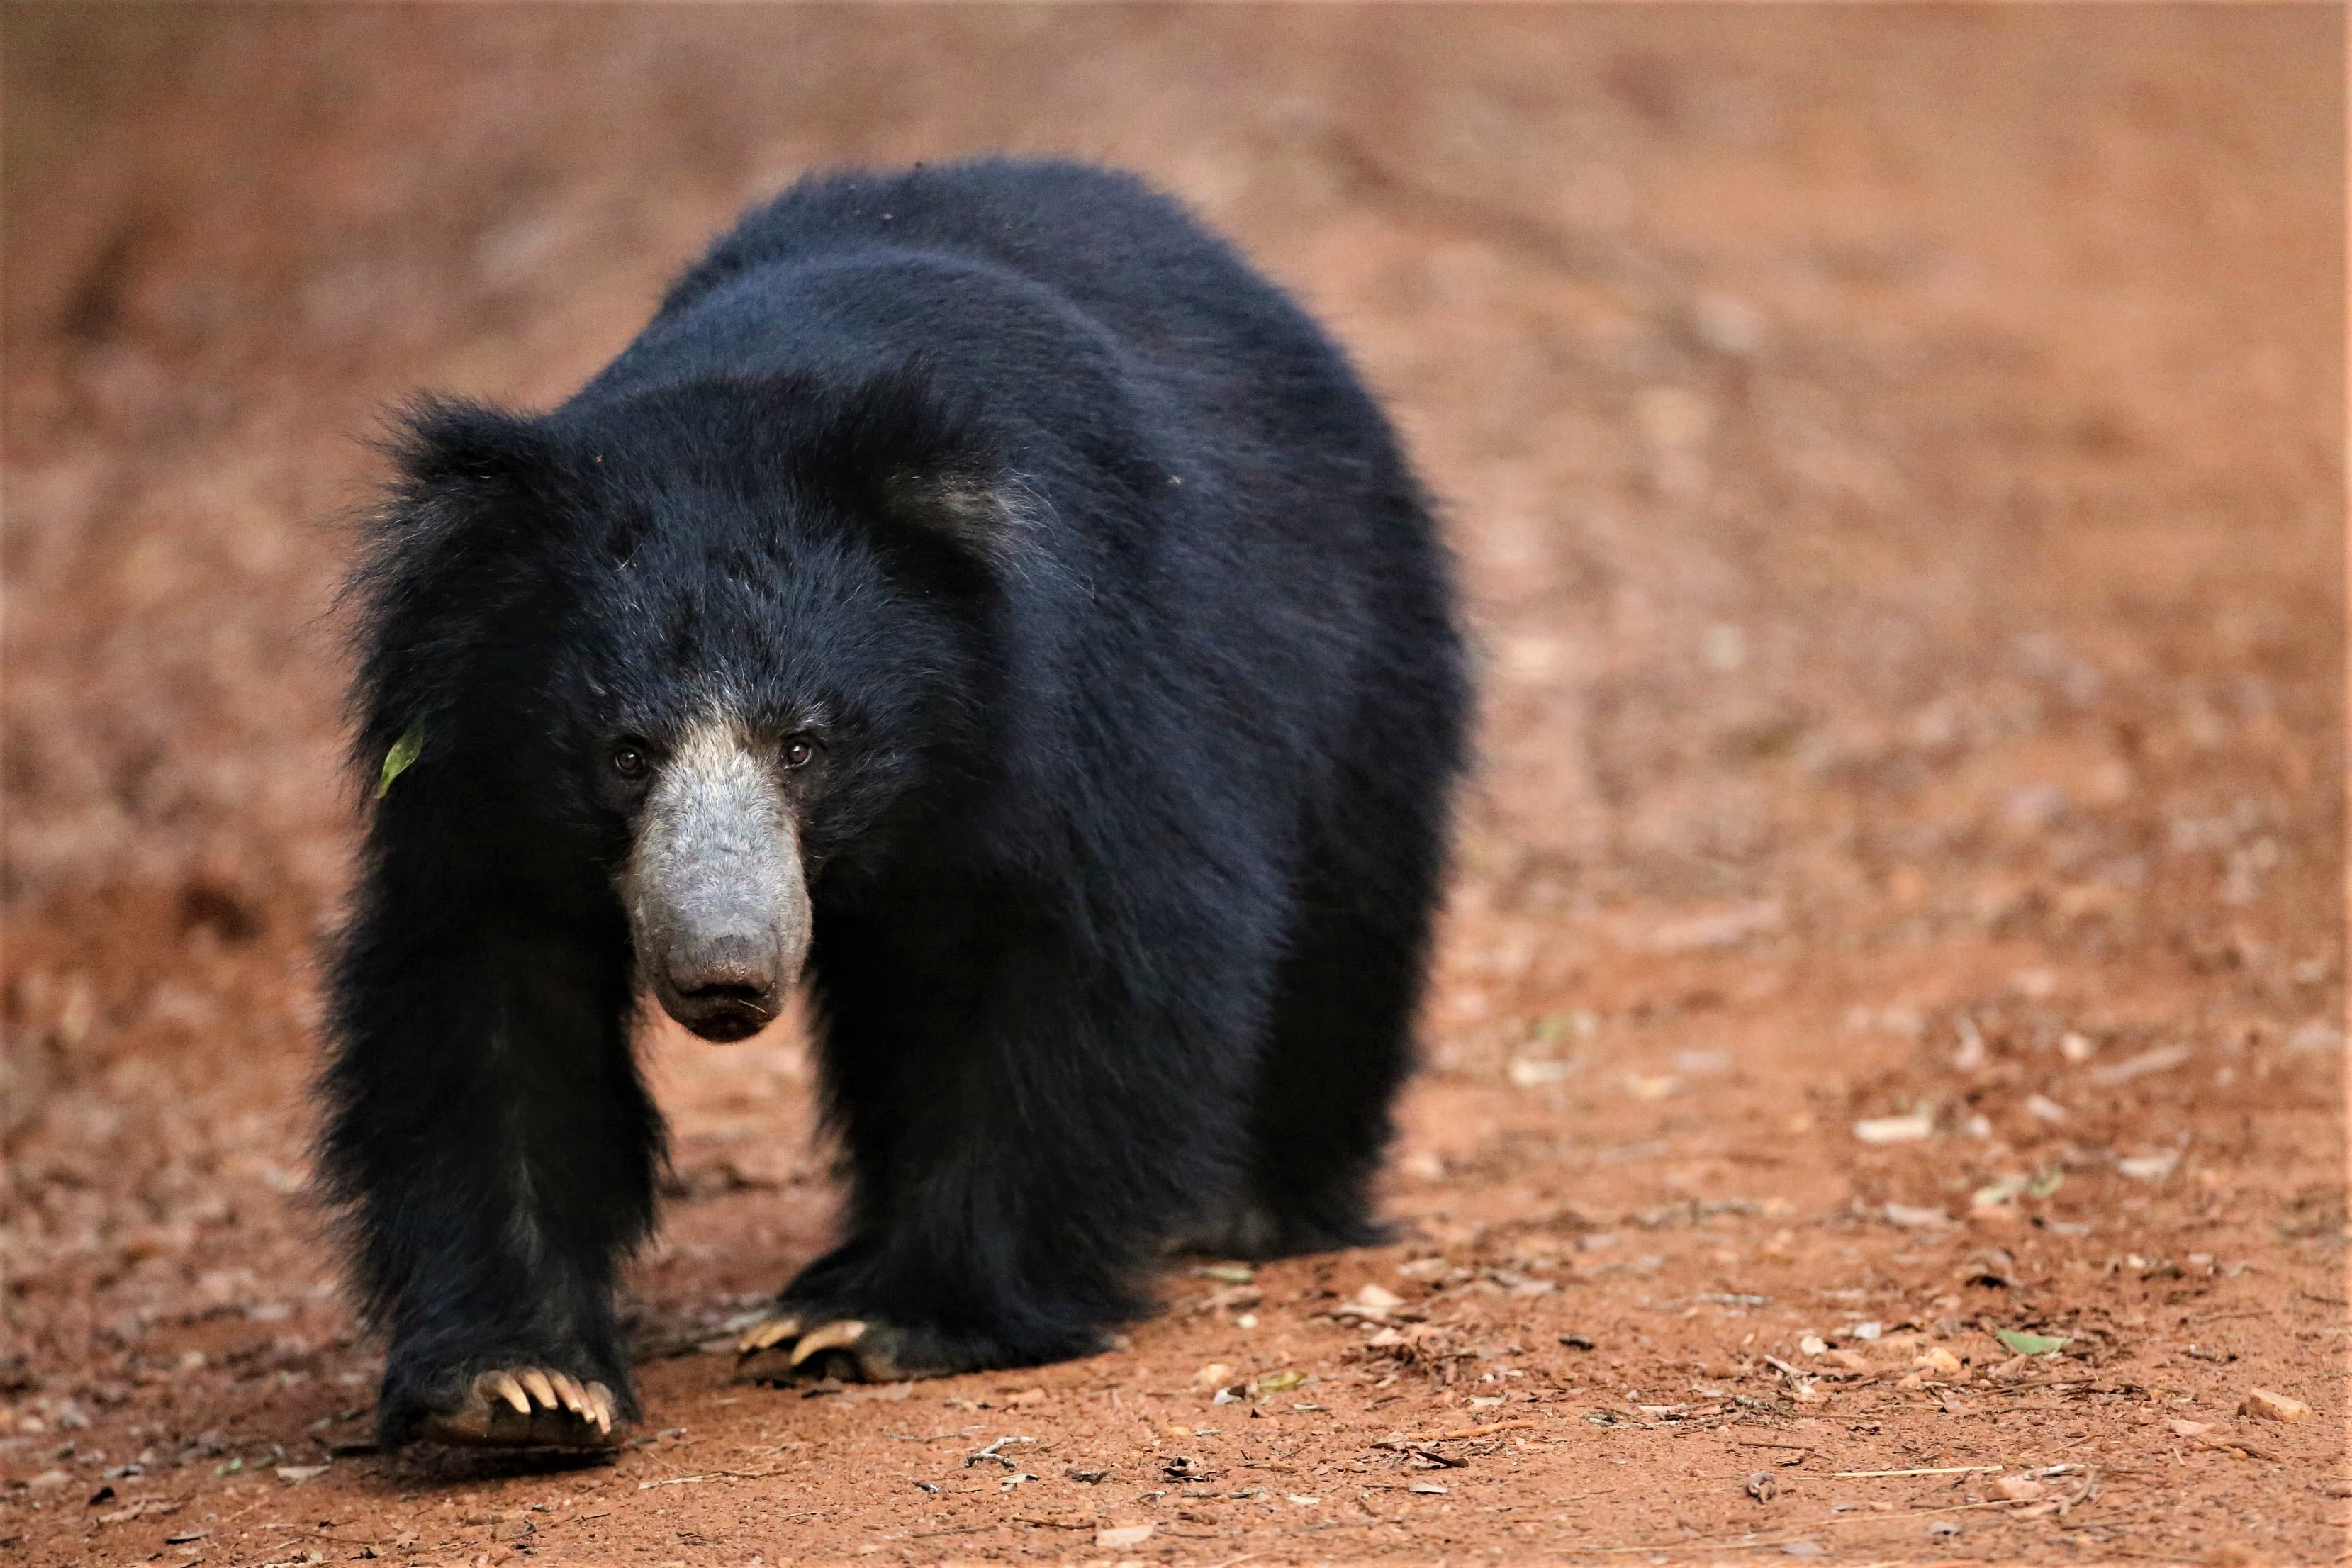 A sloth bear is spotted during a Sri Lankan safari.